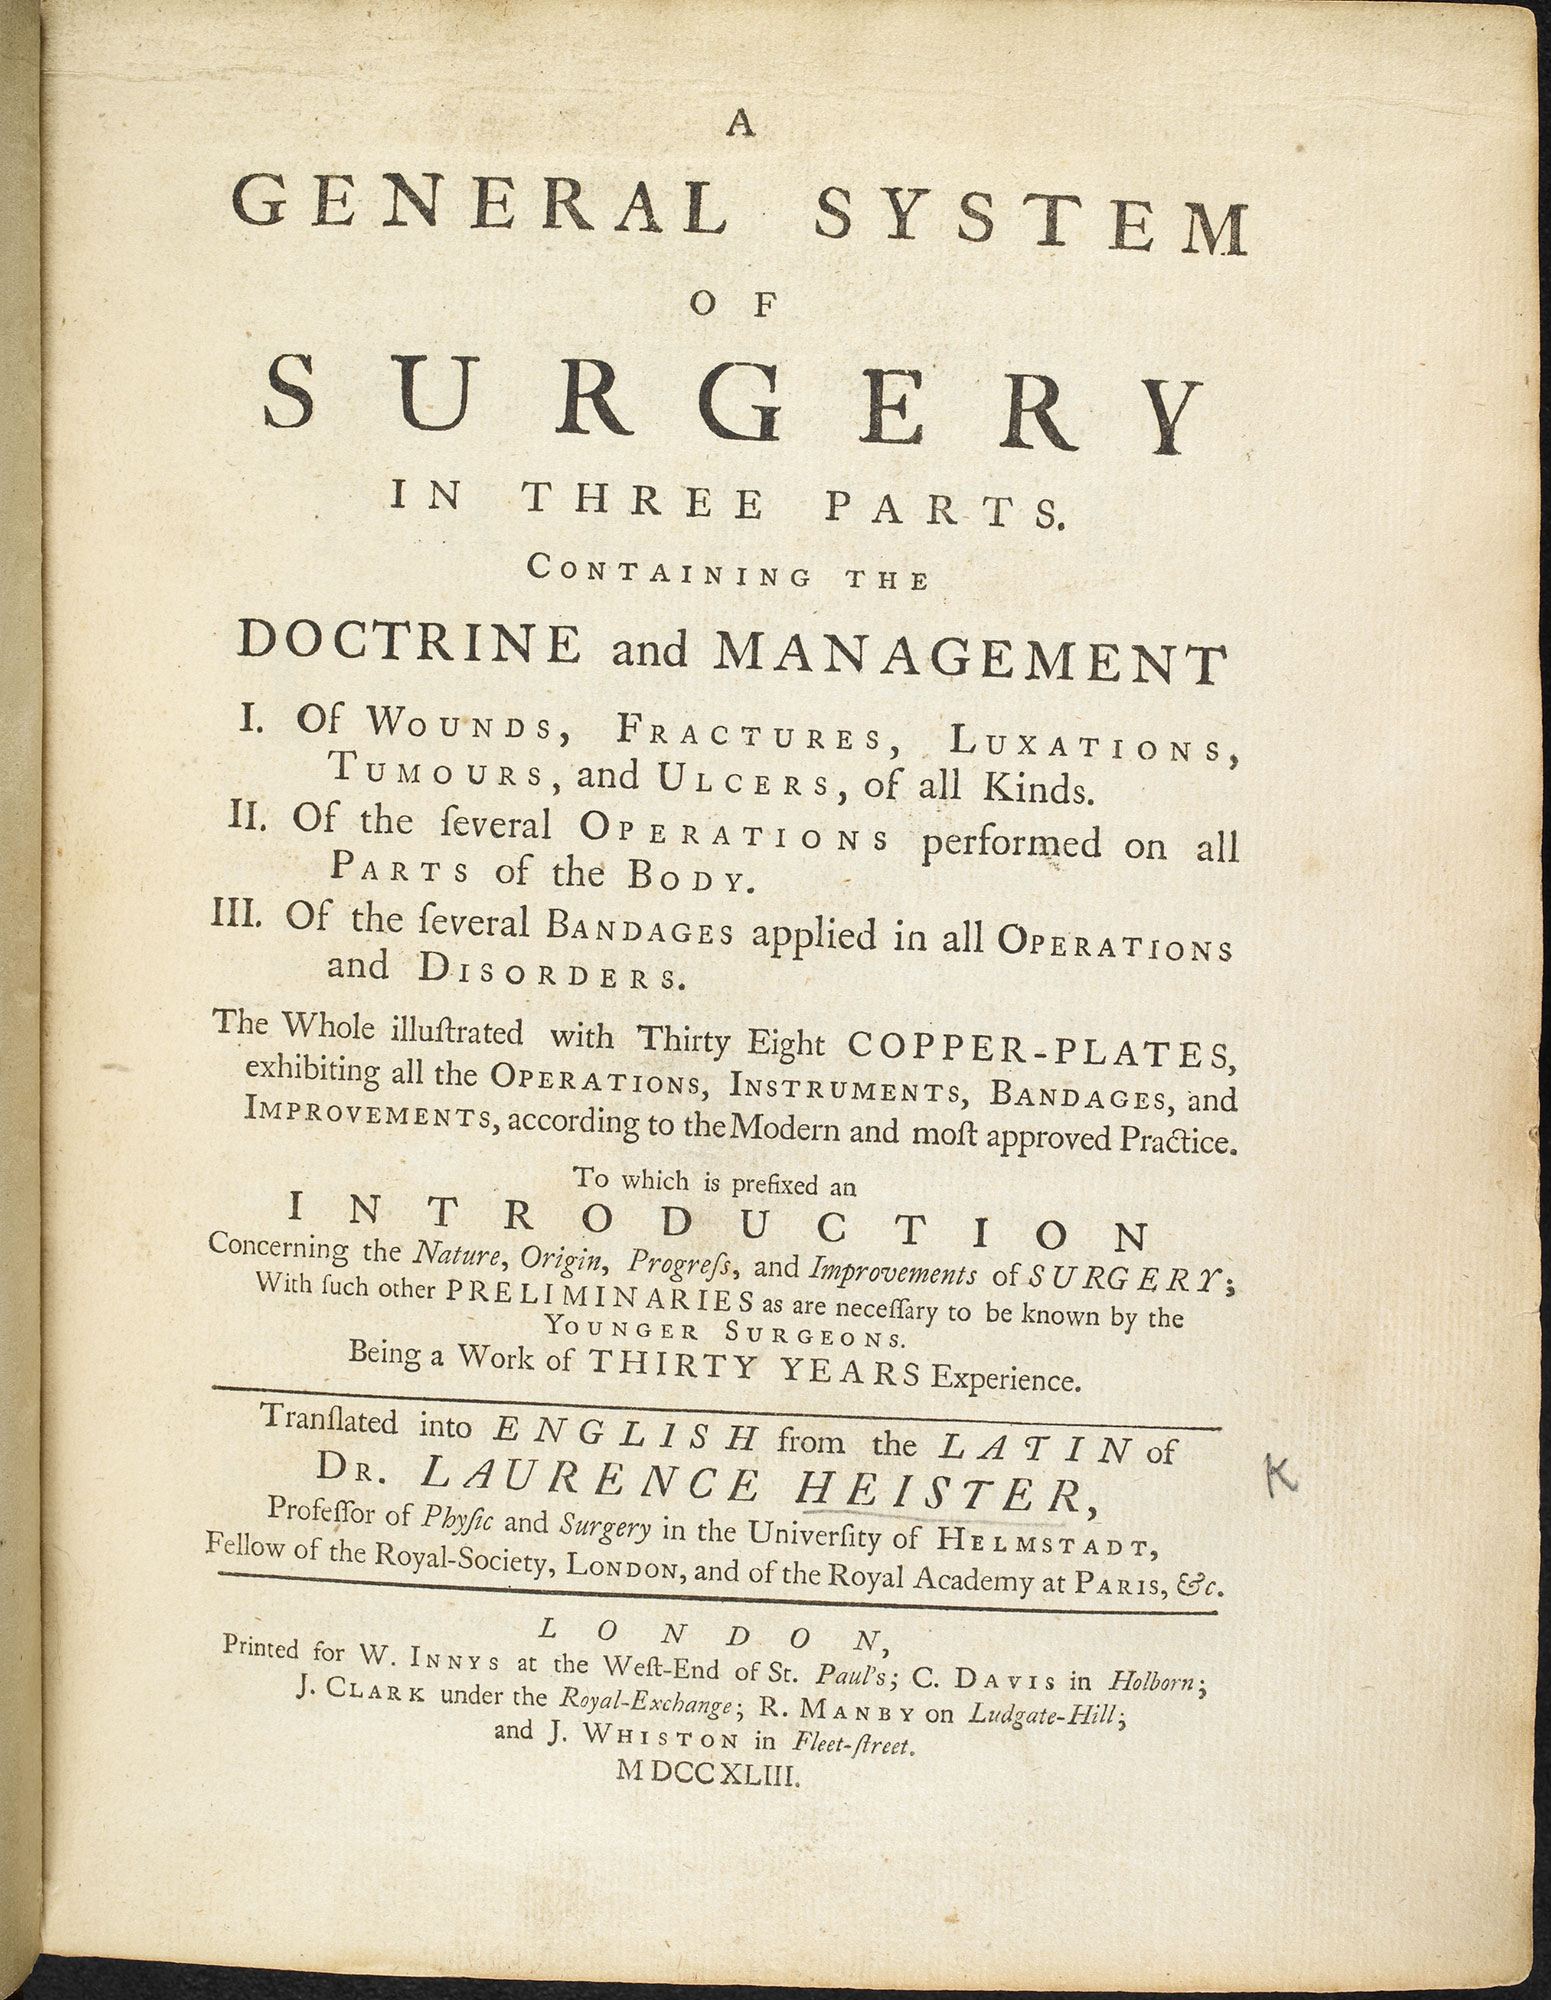 A General System of Surgery